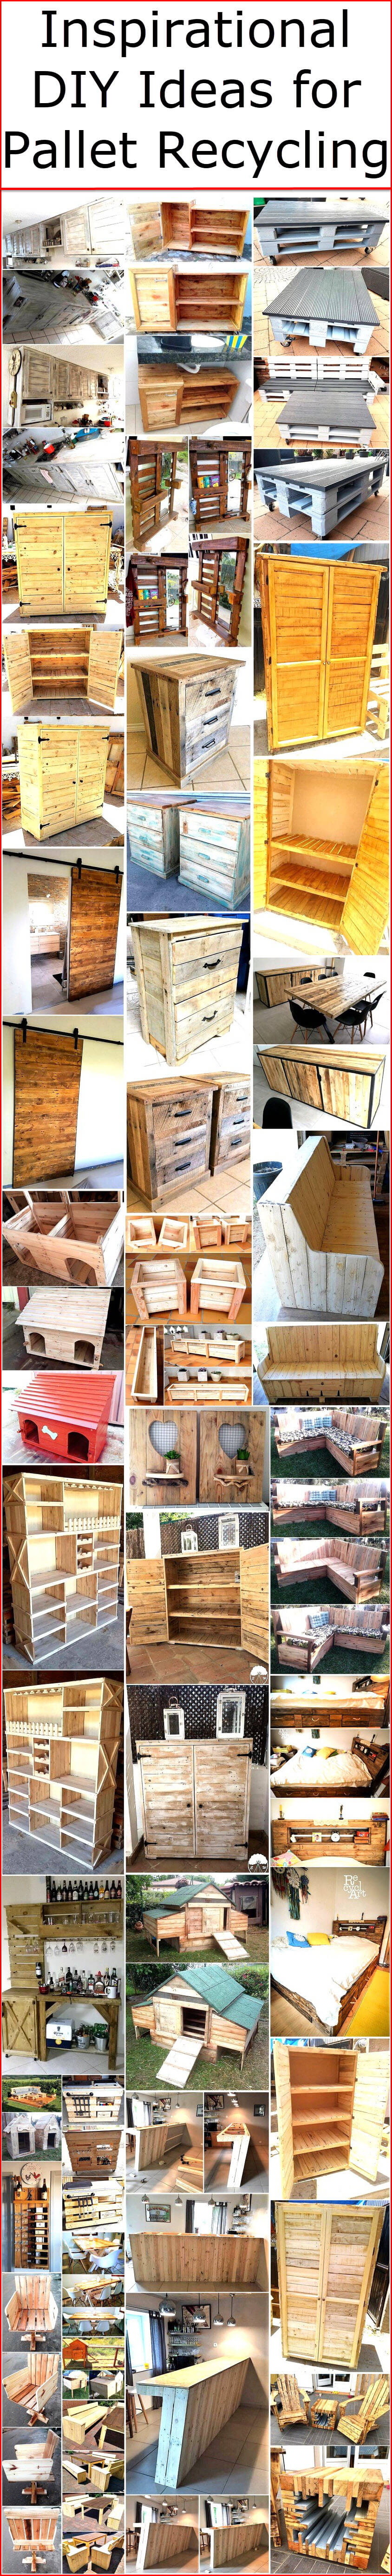 Inspirational DIY Ideas for Pallet Recycling